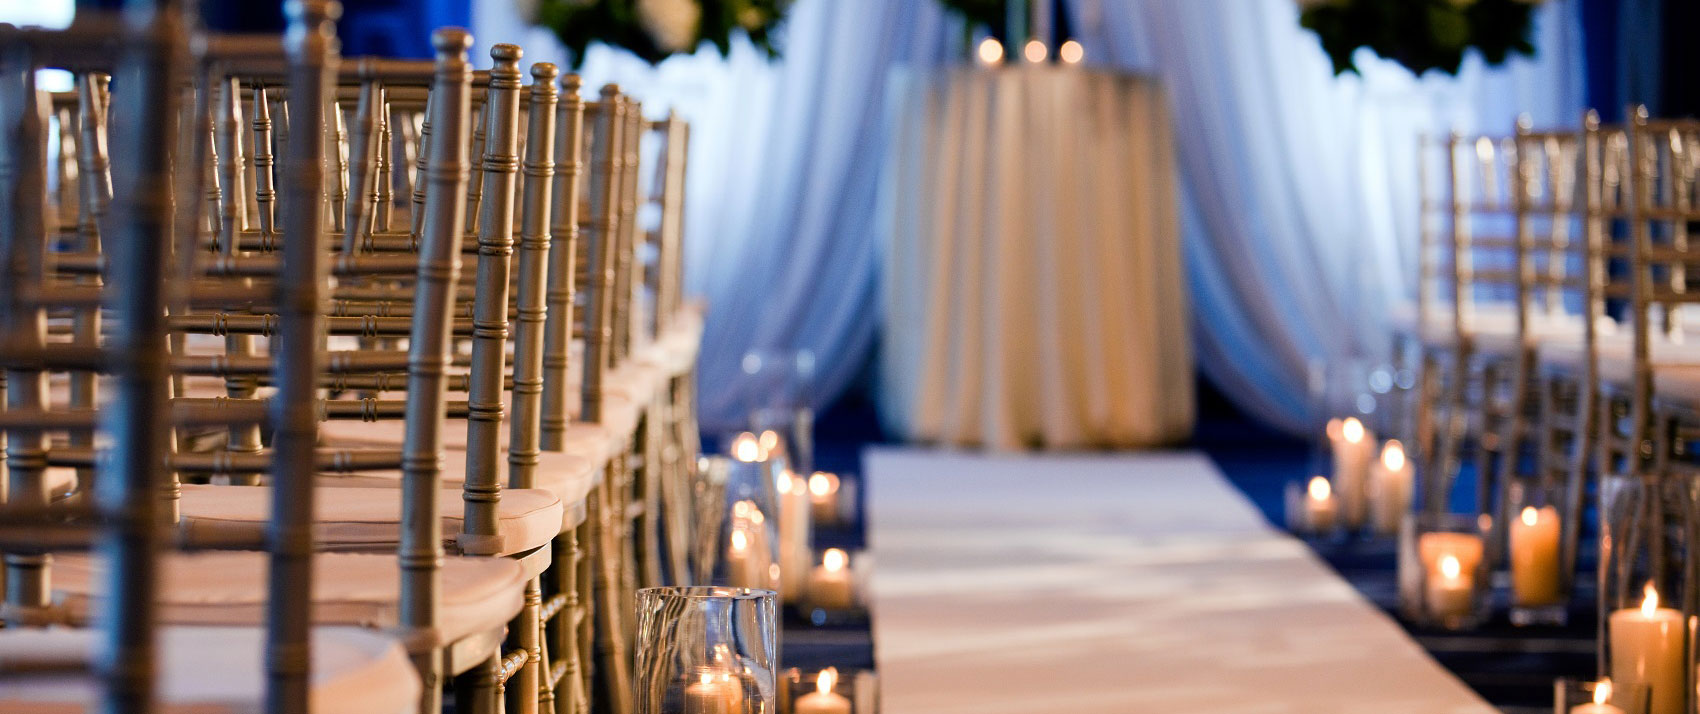 wedding aisle with chairs and candles